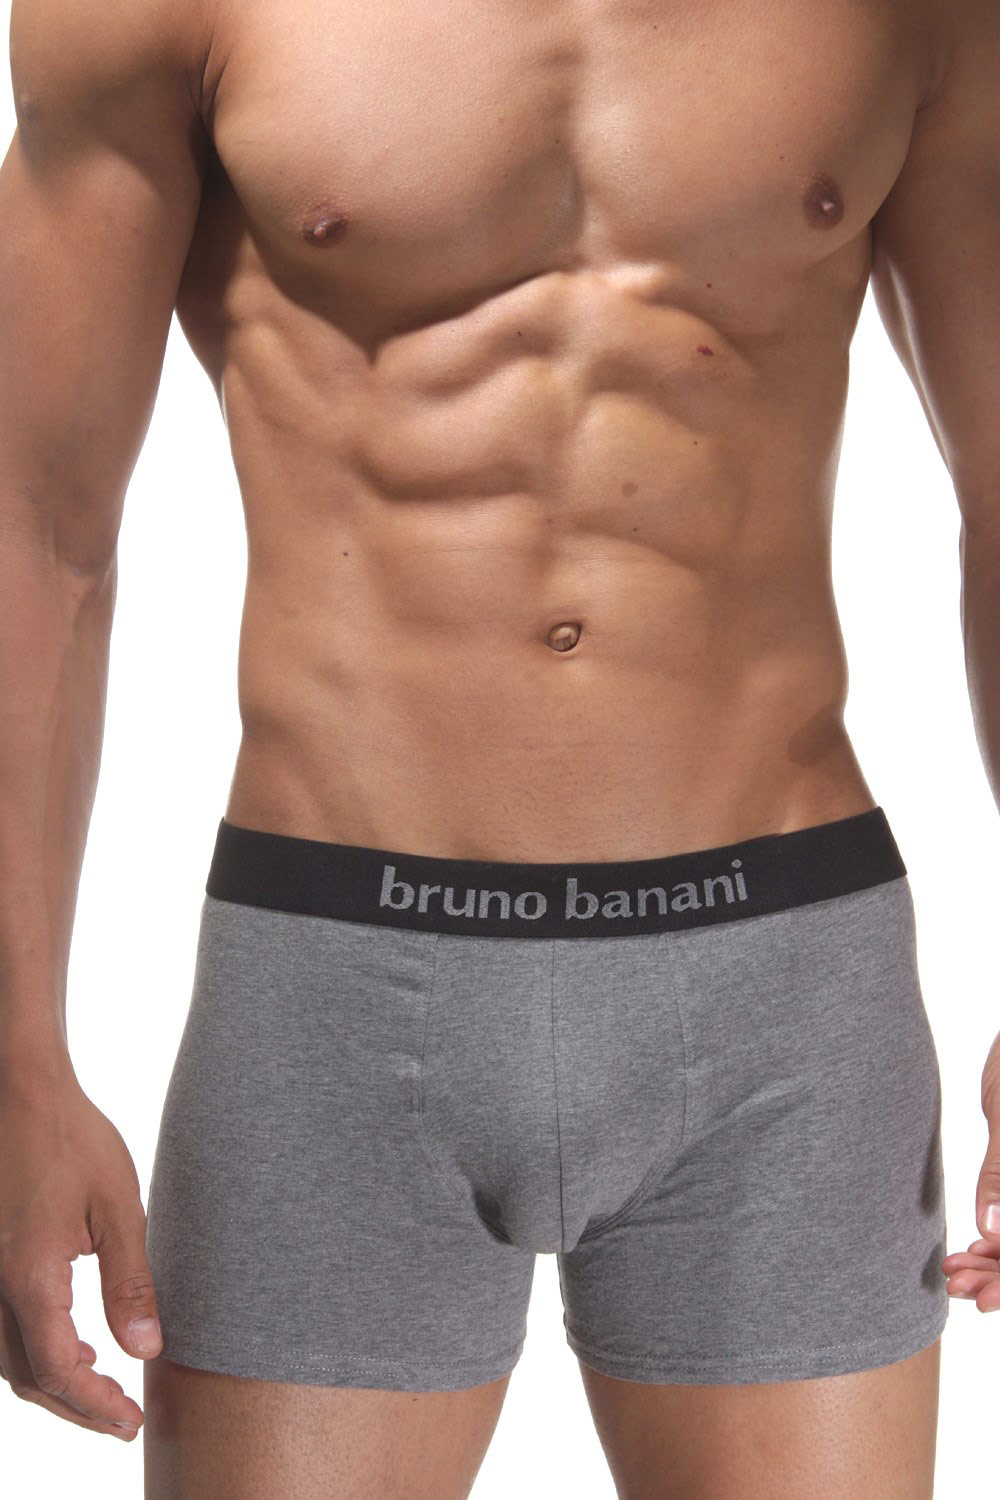 BRUNO BANANI FLOWING 1388 trunks 2 pieces at oboy.com